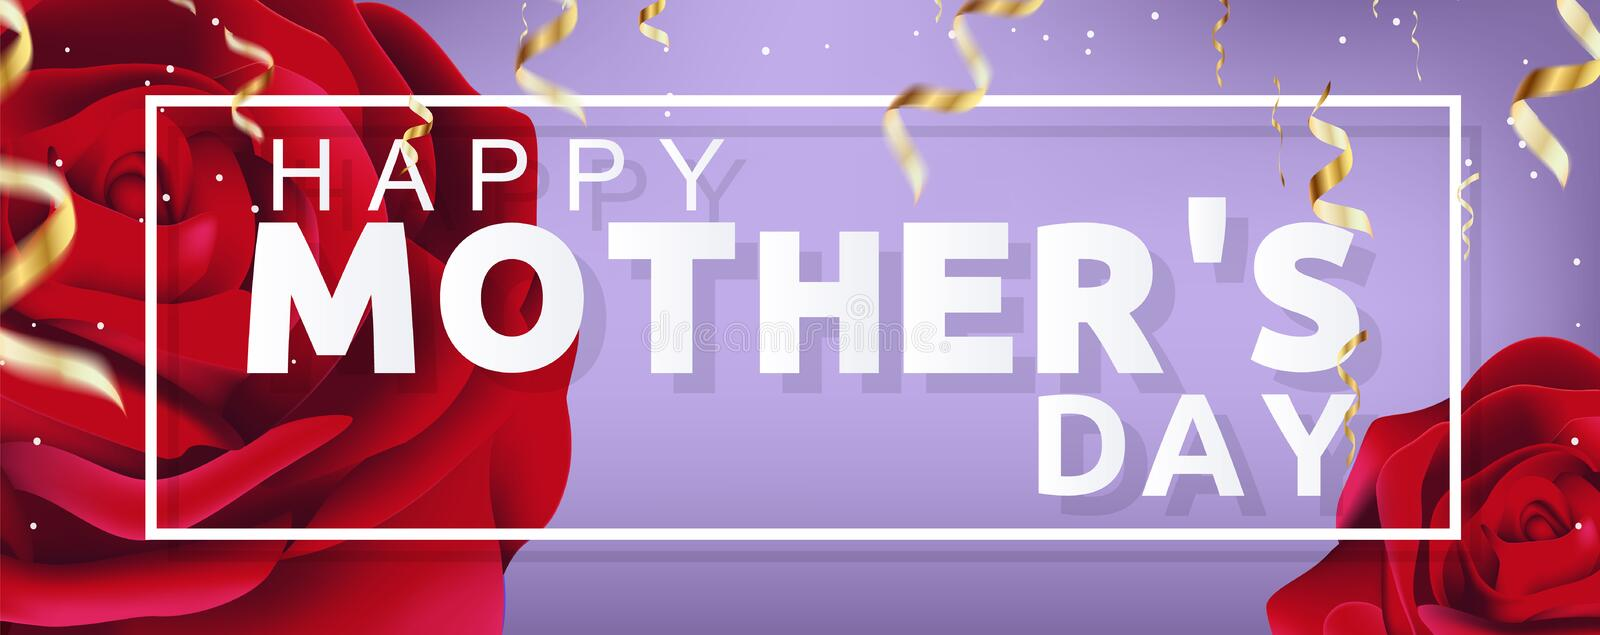 Beautiful Happy Mothers Day Vector Background Illustration. Beautiful Happy Mothers Day Sale Vector Banner Background Illustration for social media vector illustration